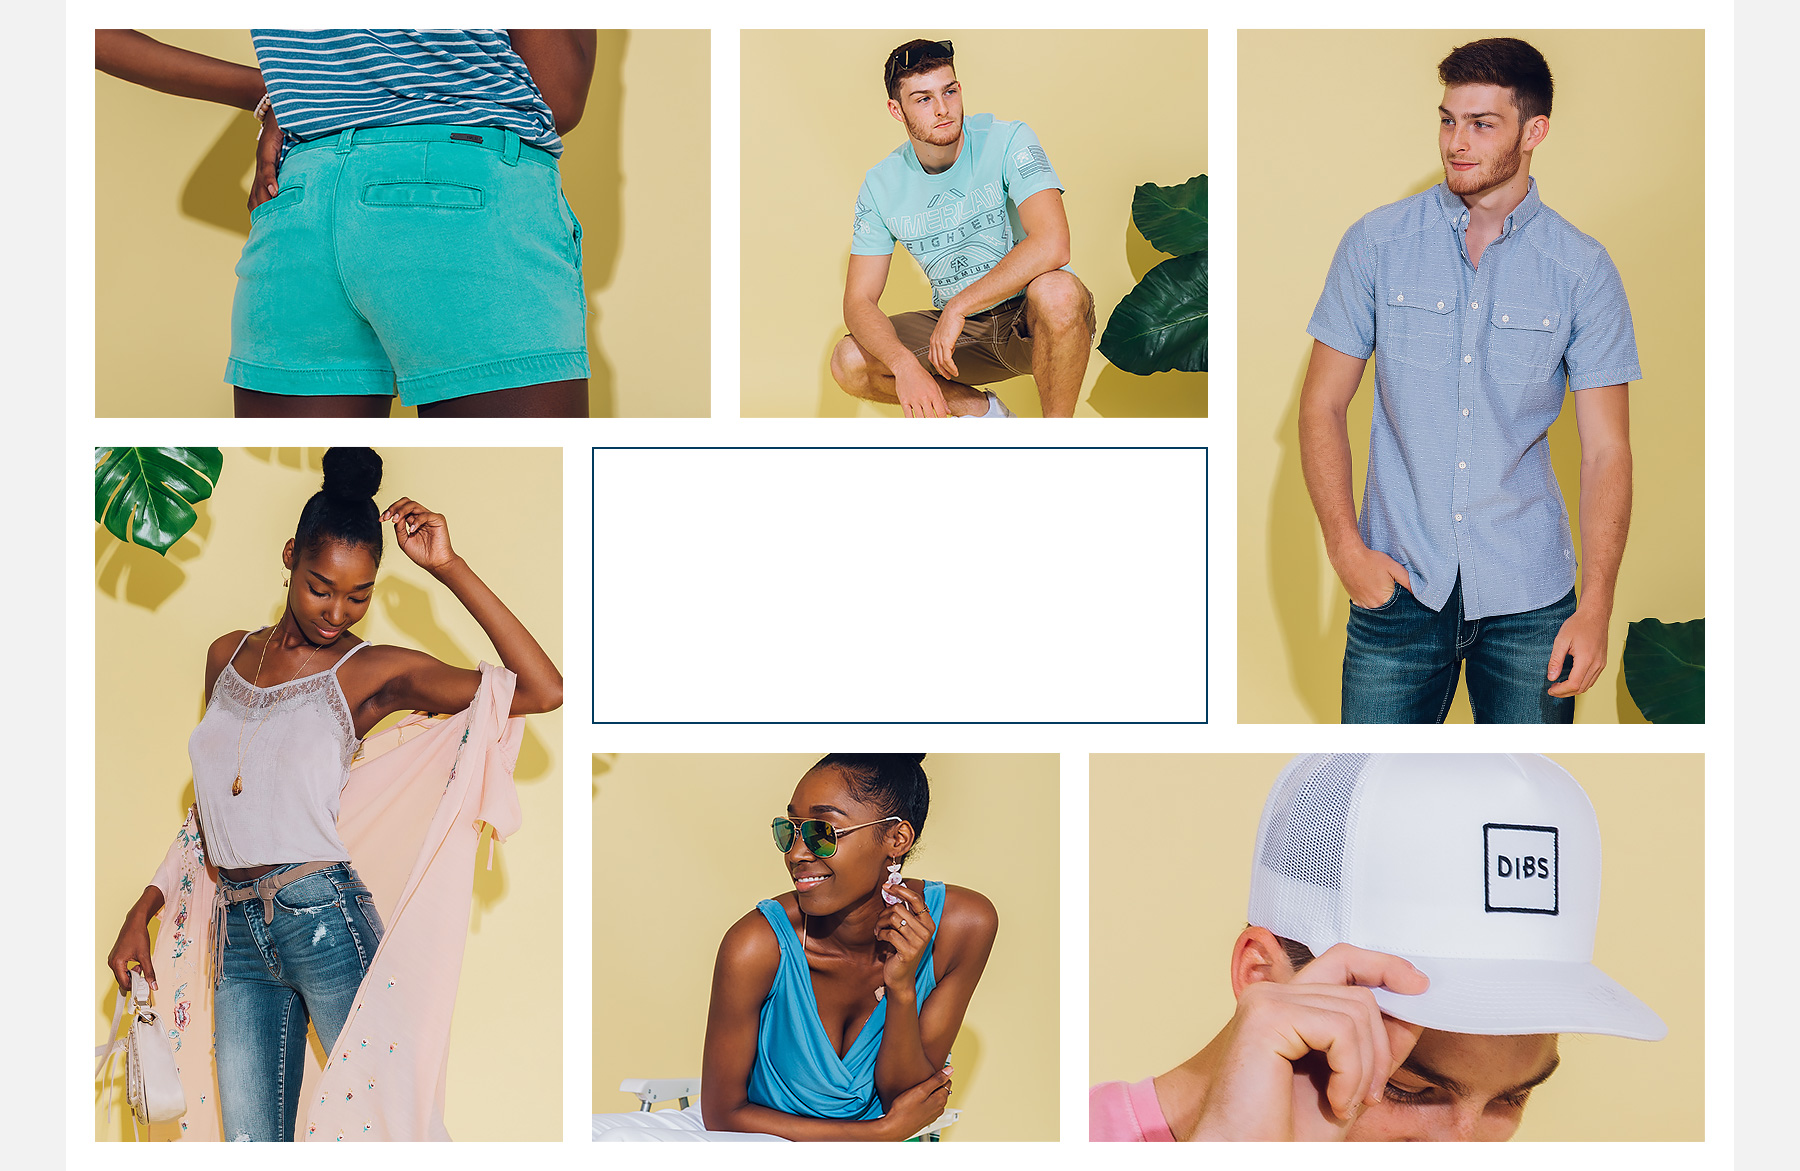 Collage of men's and women's outfits to shop.